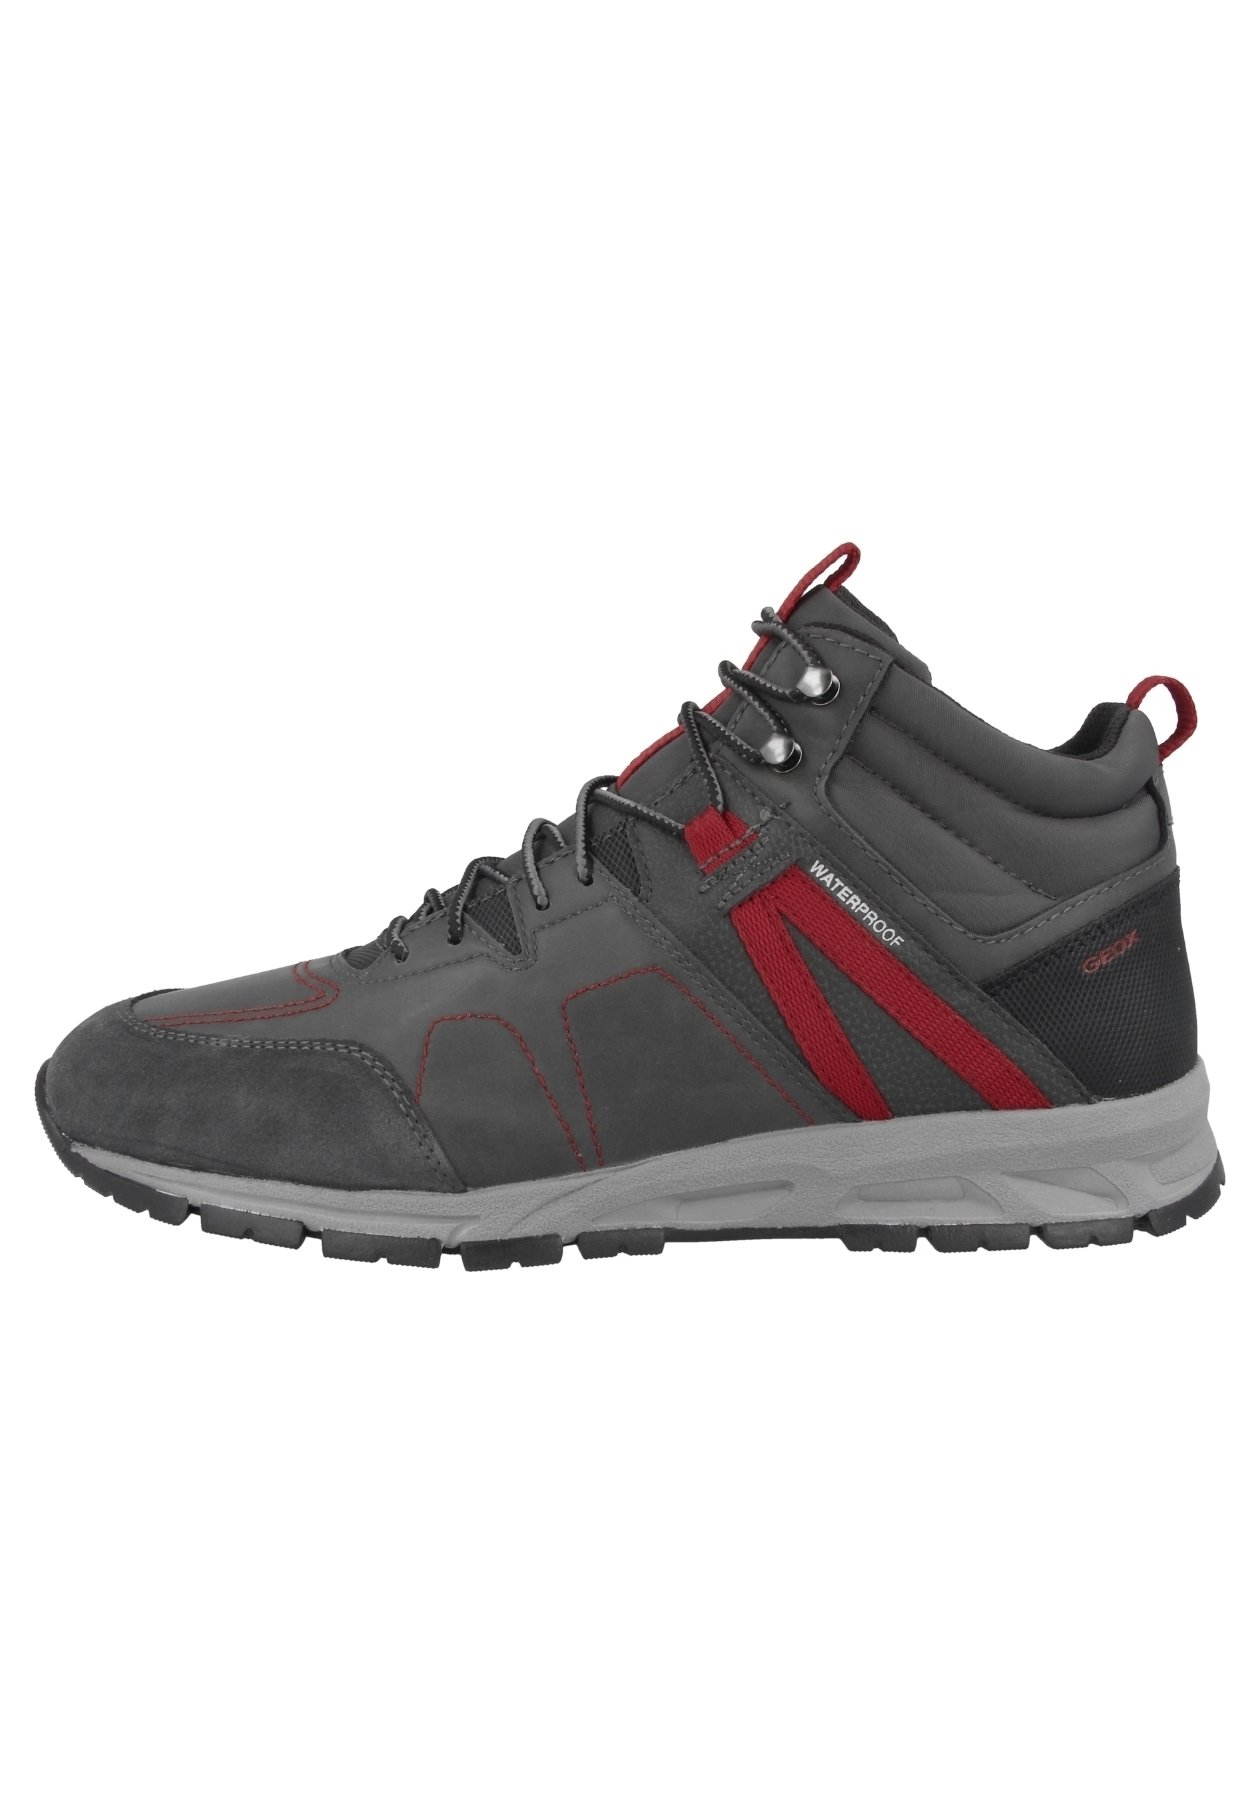 Homme Baskets montantes - anthracite